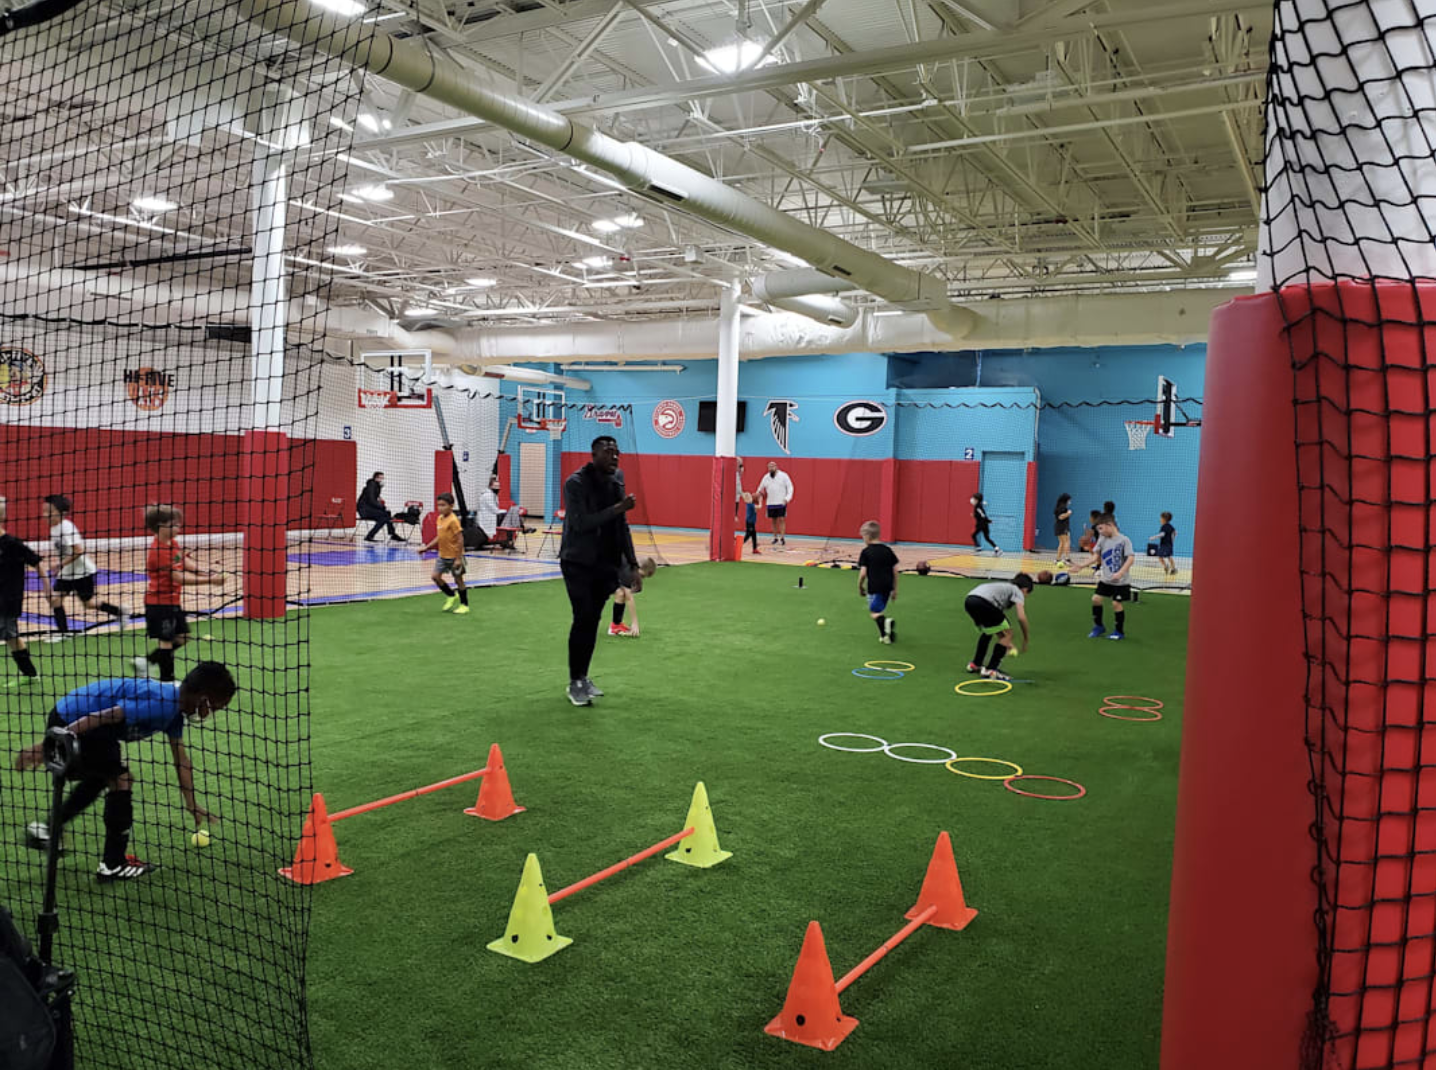 First of a kind Indoor Sports Facility opens in Alpharetta, GA Mall